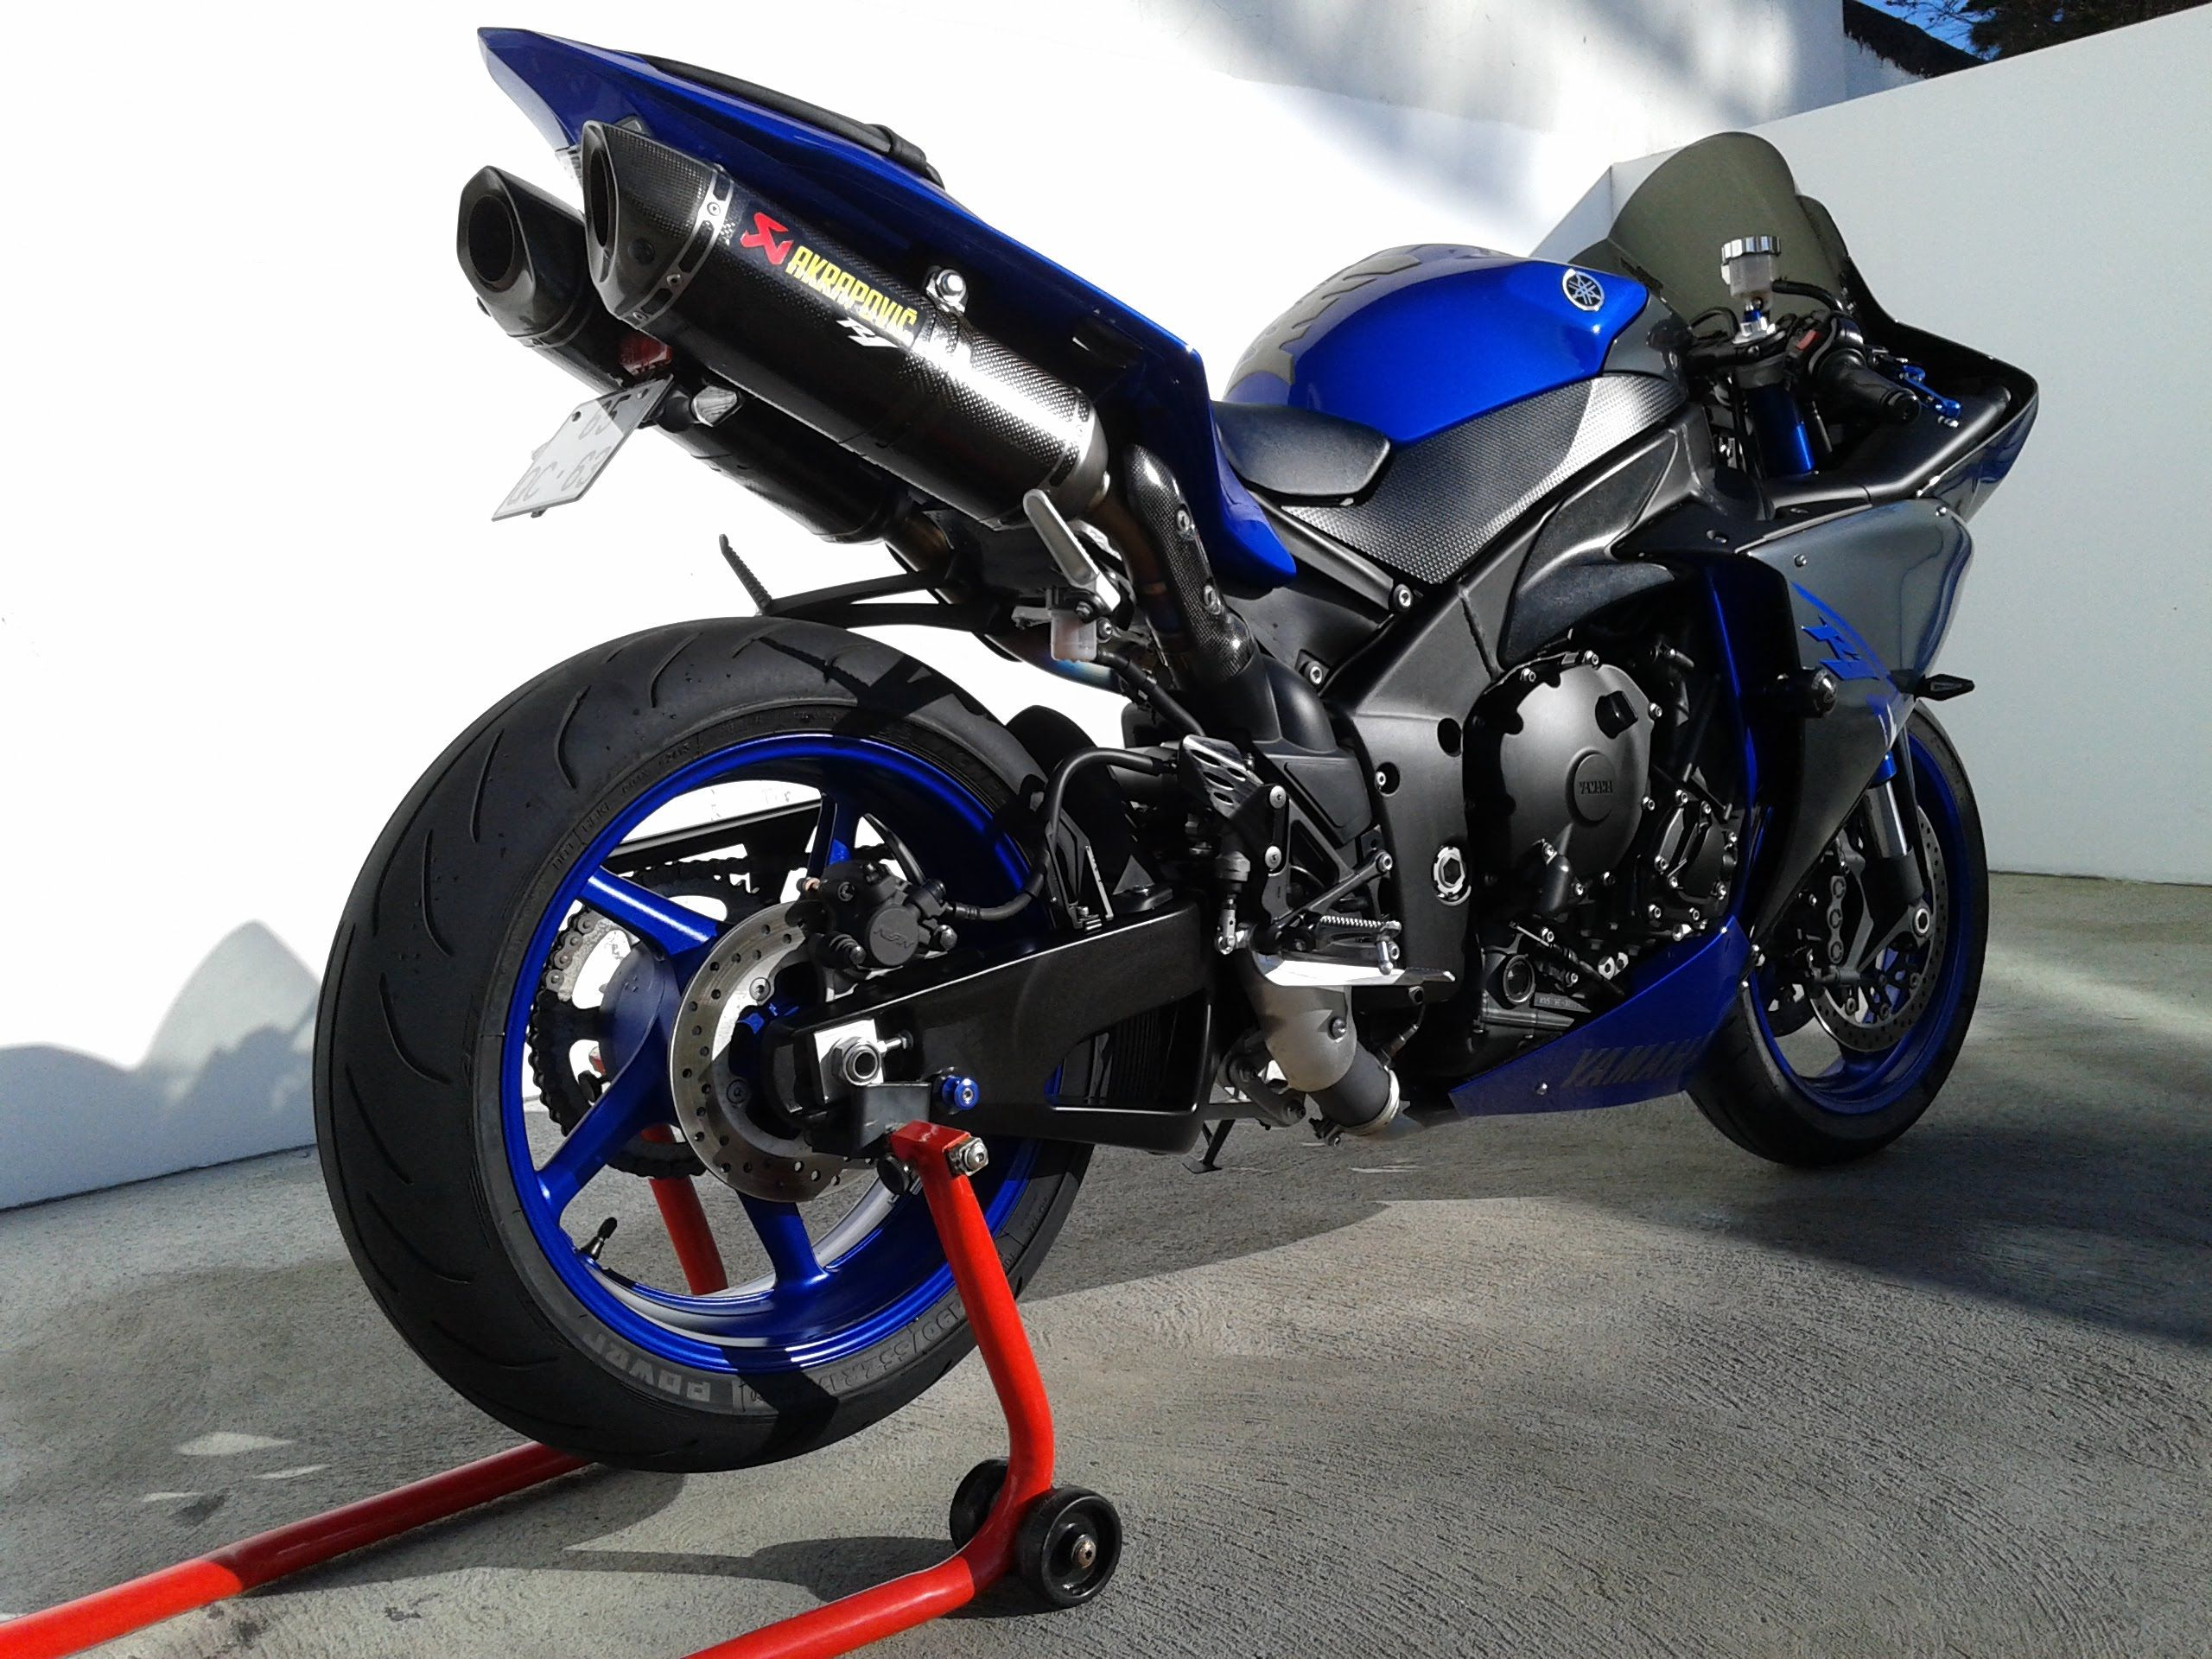 2014 yamaha r1 race blu akrapovic exhaust r1 my dream for Yamaha r1 2014